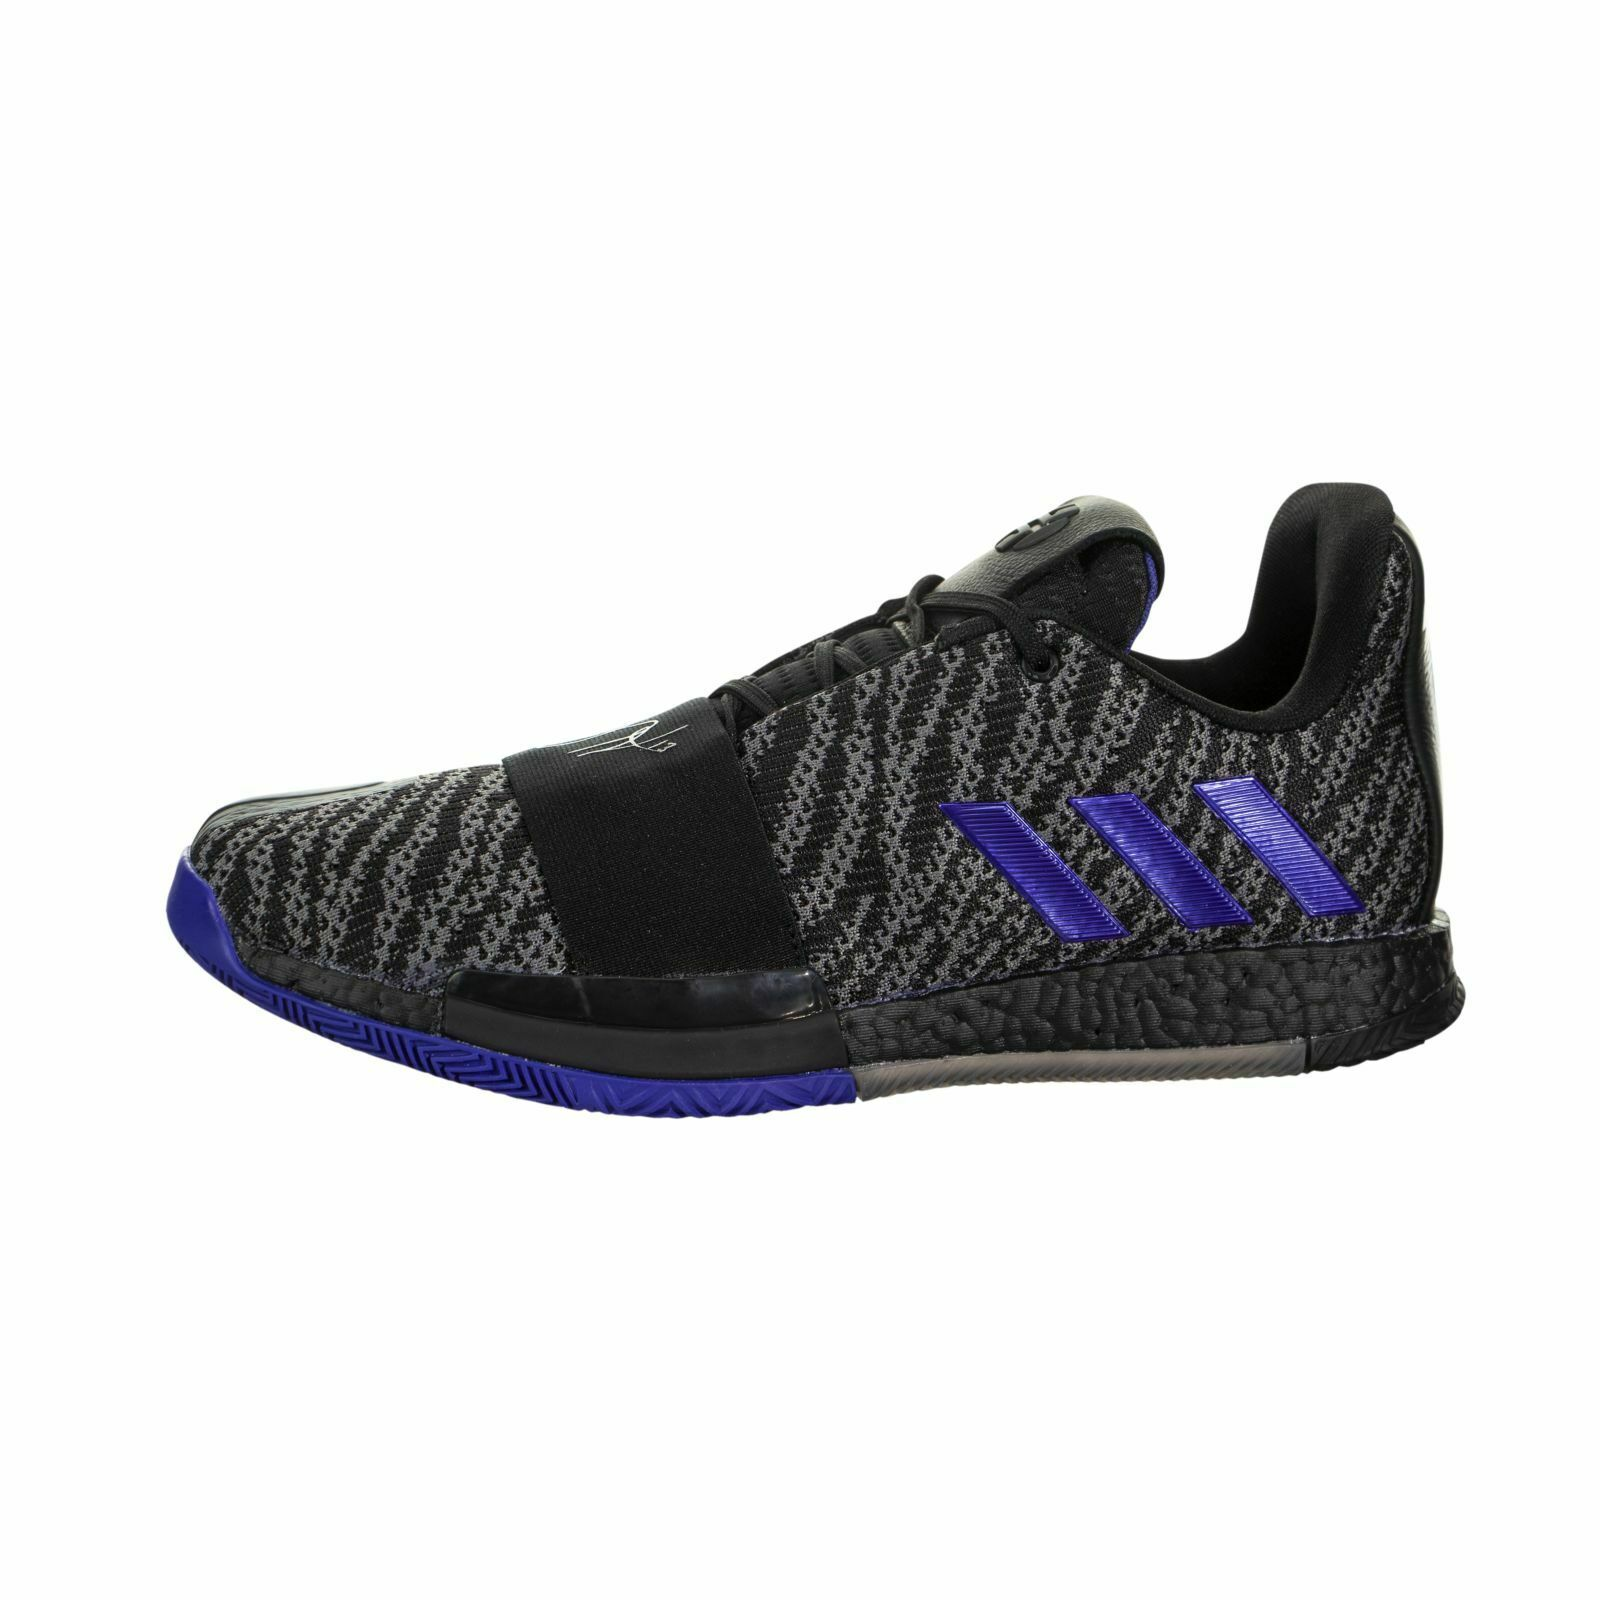 ea1760722b Harden Vol. 3 g26811 Adidas nooukm4512-Athletic Shoes - www ...